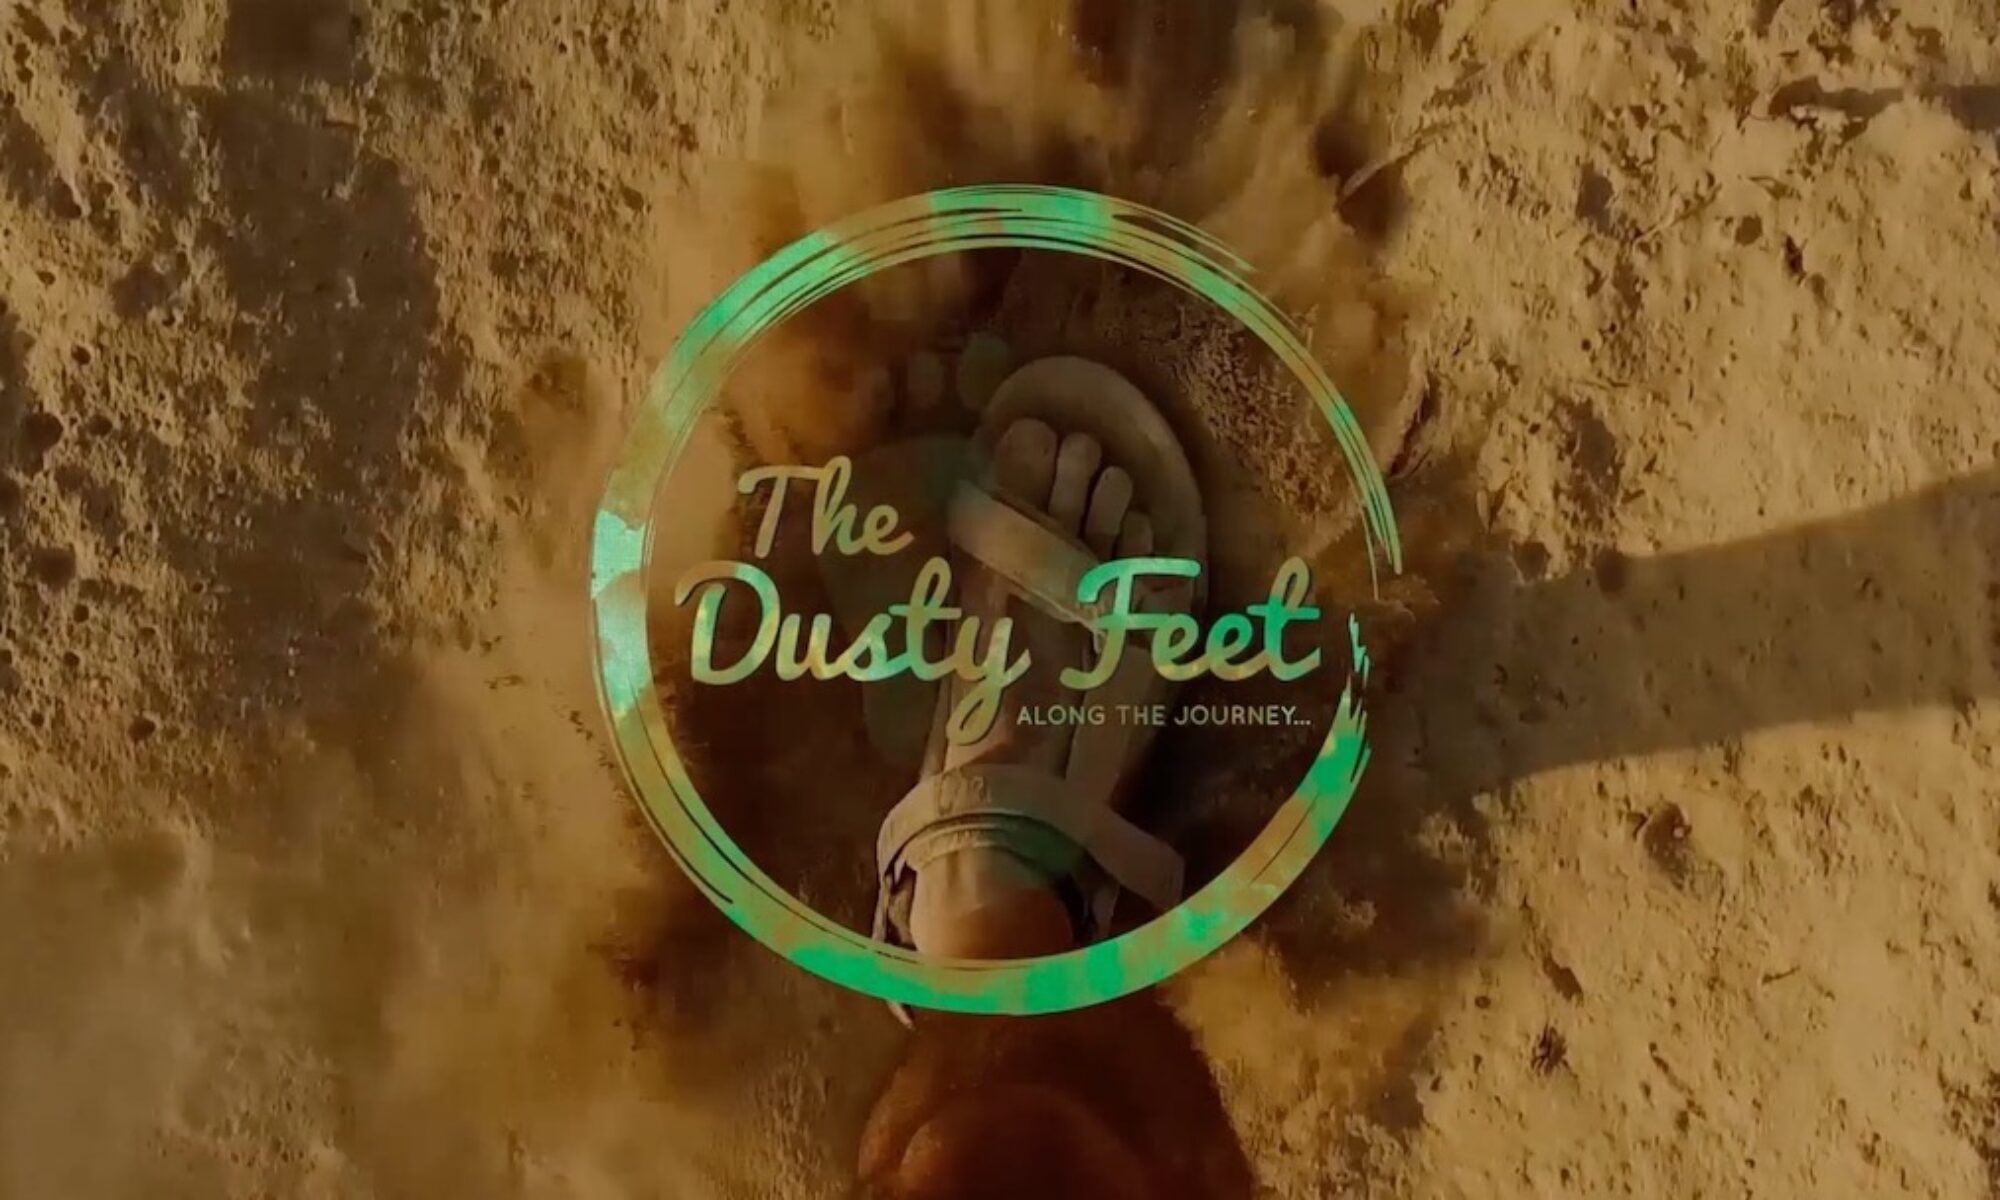 TheDustyFeet